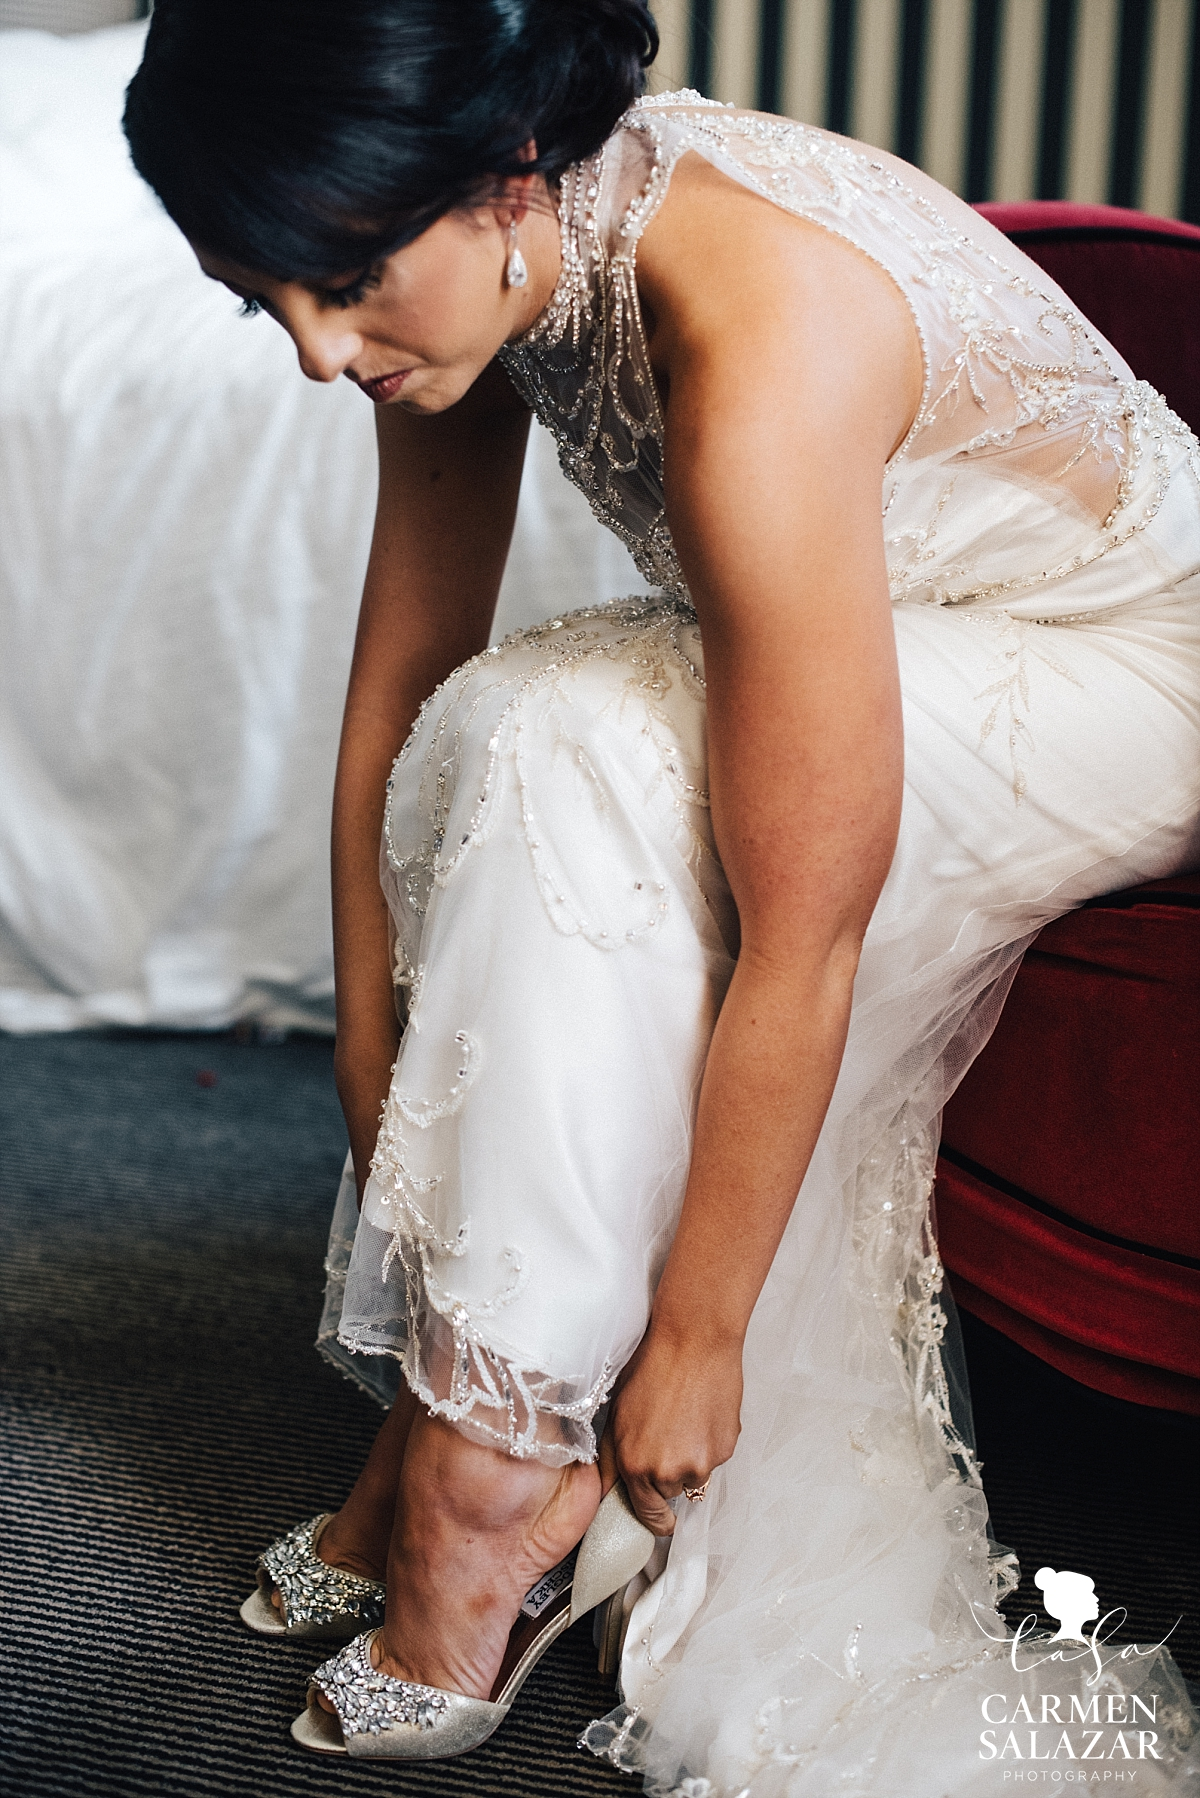 Bride putting on shoes at The Citizen - Carmen Salazar